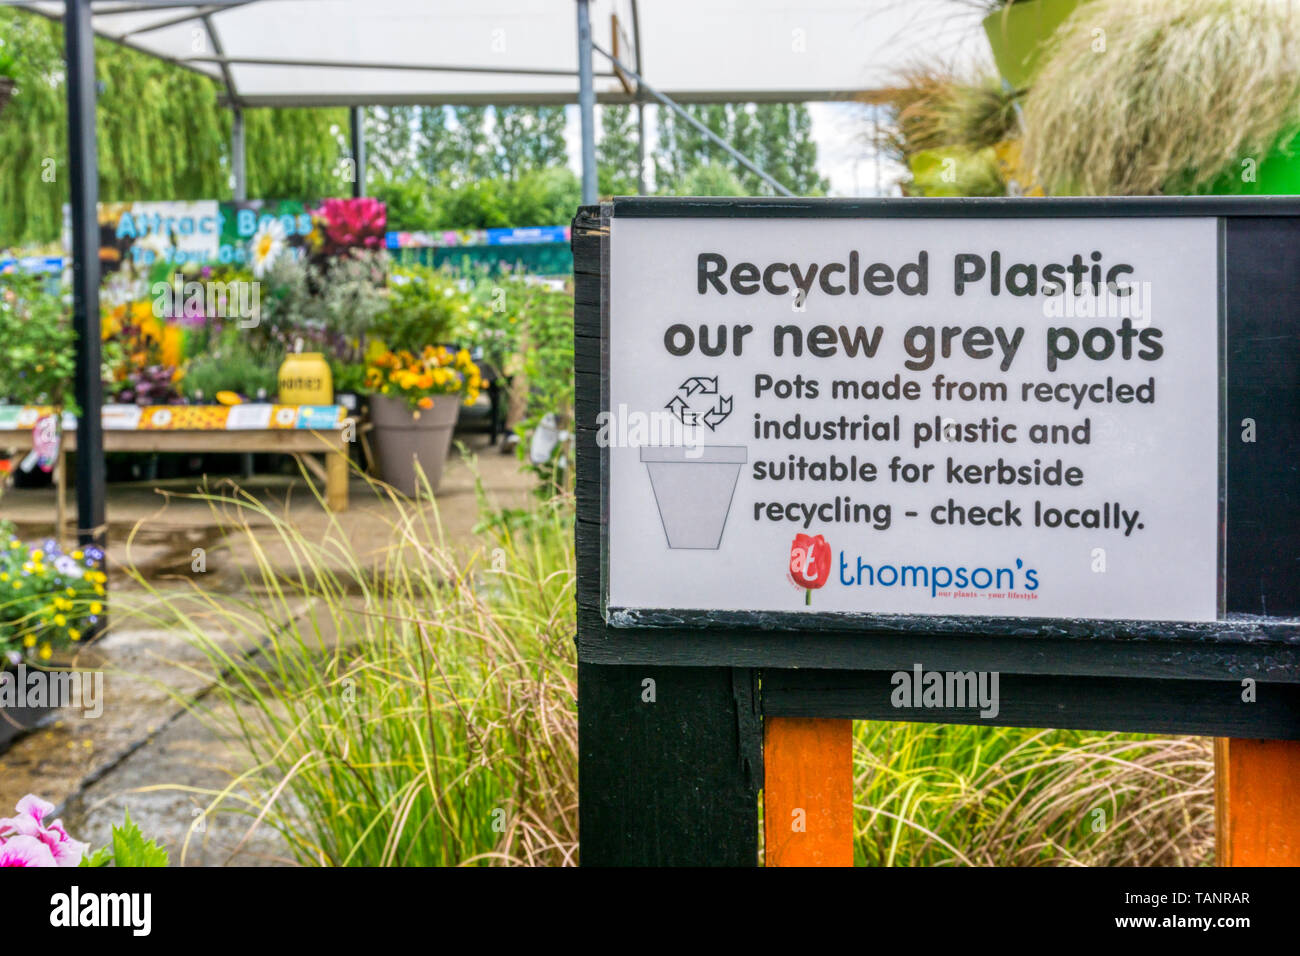 Sign at a garden centre advertises recyclable grey plastic flower pots made from recycled industrial plastic which can be recycled themselves. - Stock Image